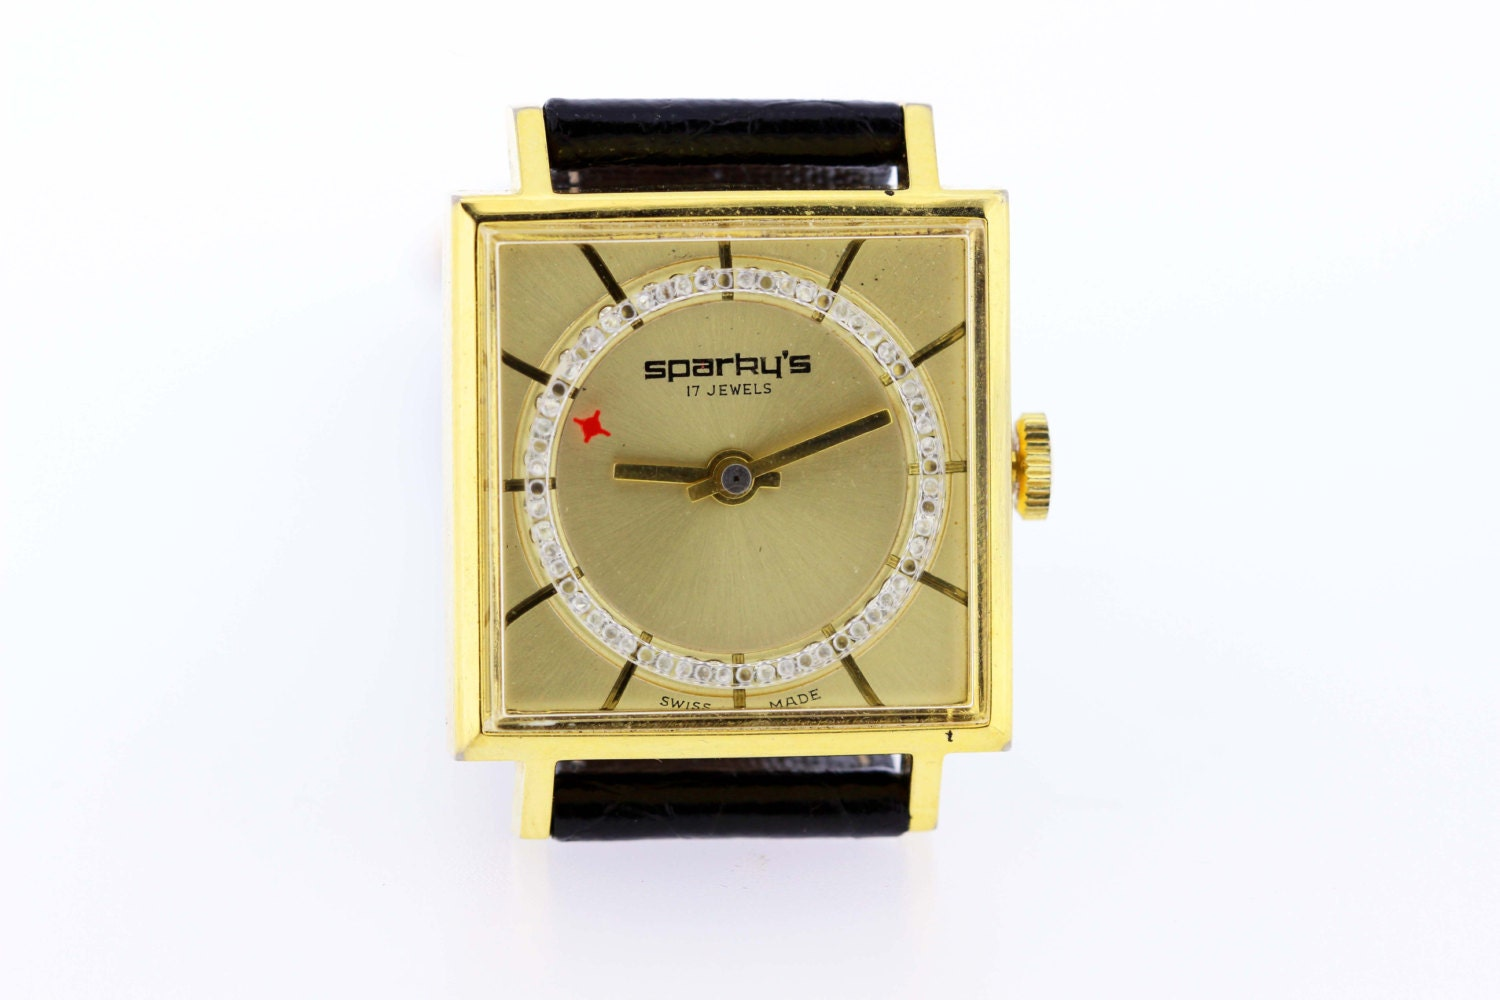 Sparky\'s 17 Jewel Wrist Watch 1970s